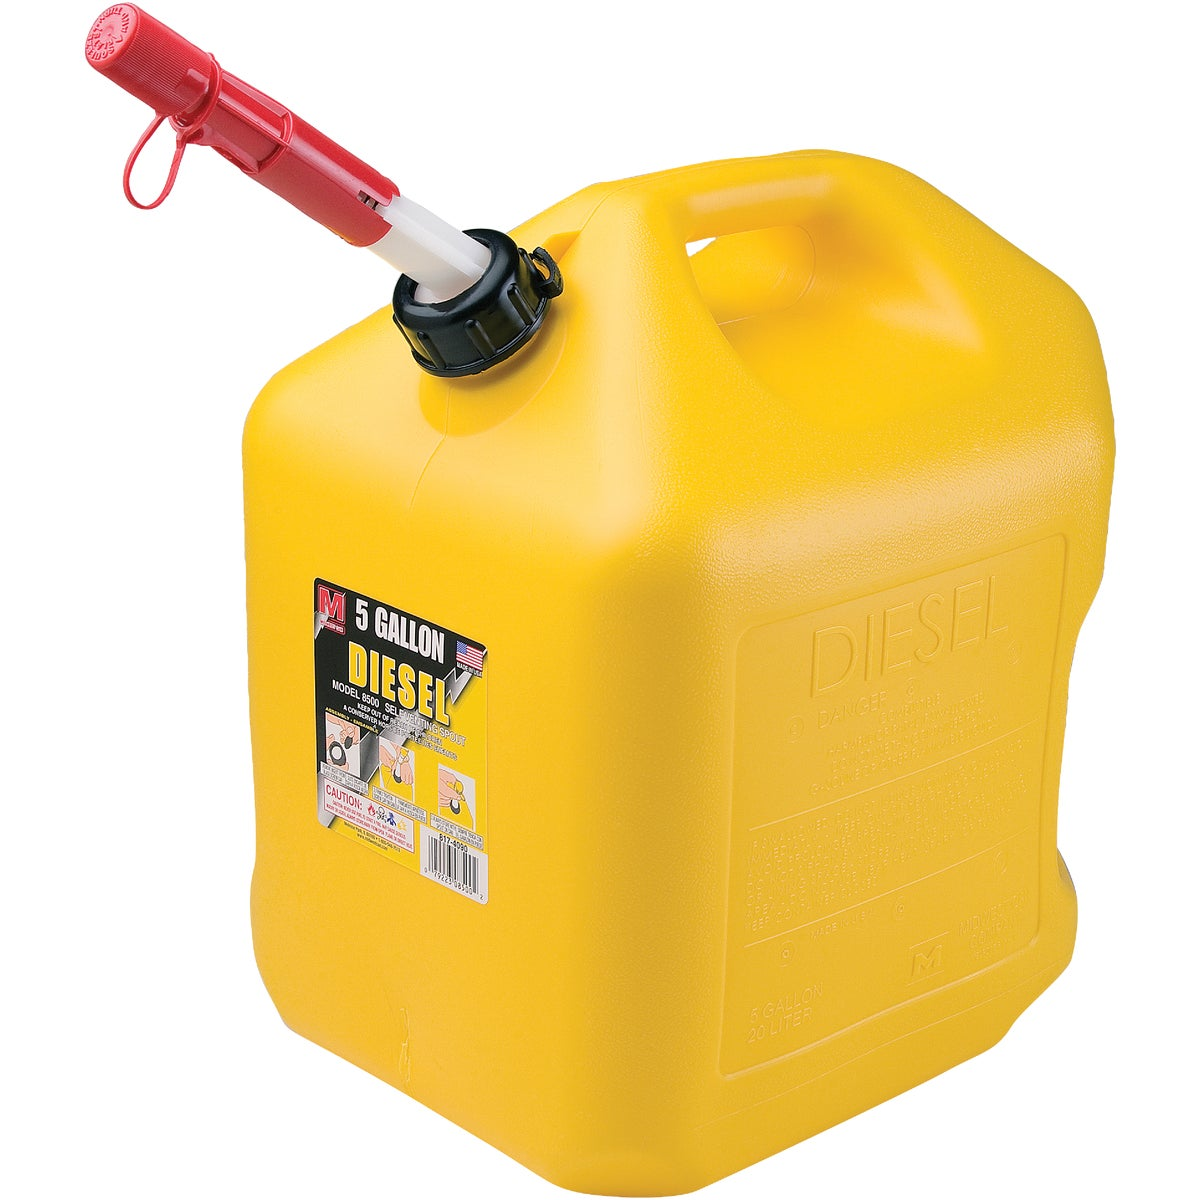 5 GALLON DIESEL CAN - 85056 by Plastics Group